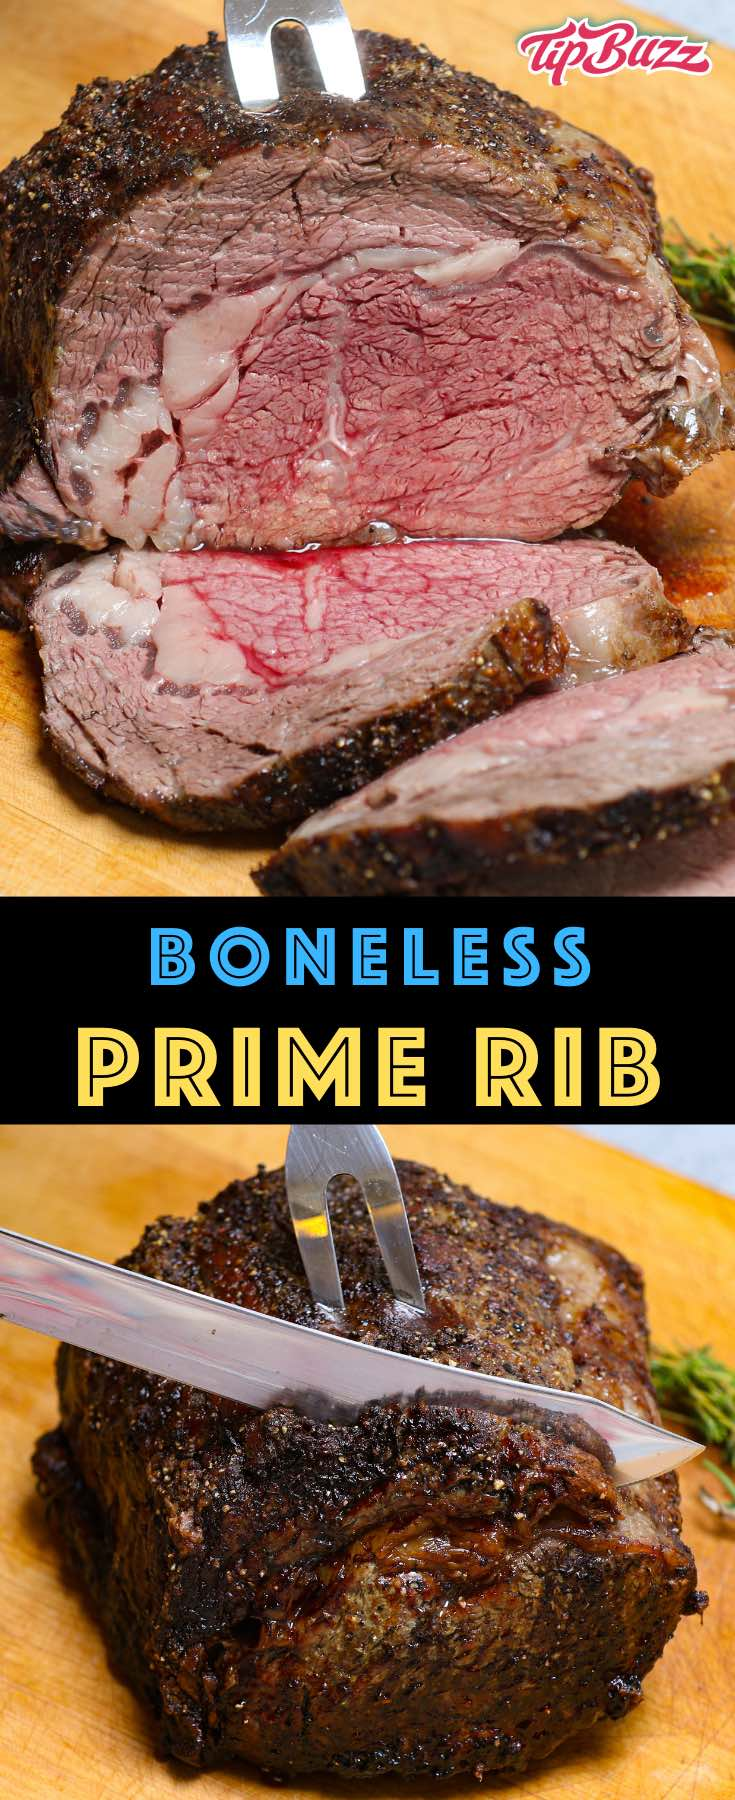 This Boneless Prime Rib is roasted to perfection in the oven for tender and juicy meat that melts in your mouth! This boneless rib roast is an easy main course for holiday entertaining or any celebration! #primerib #bonelessribroast